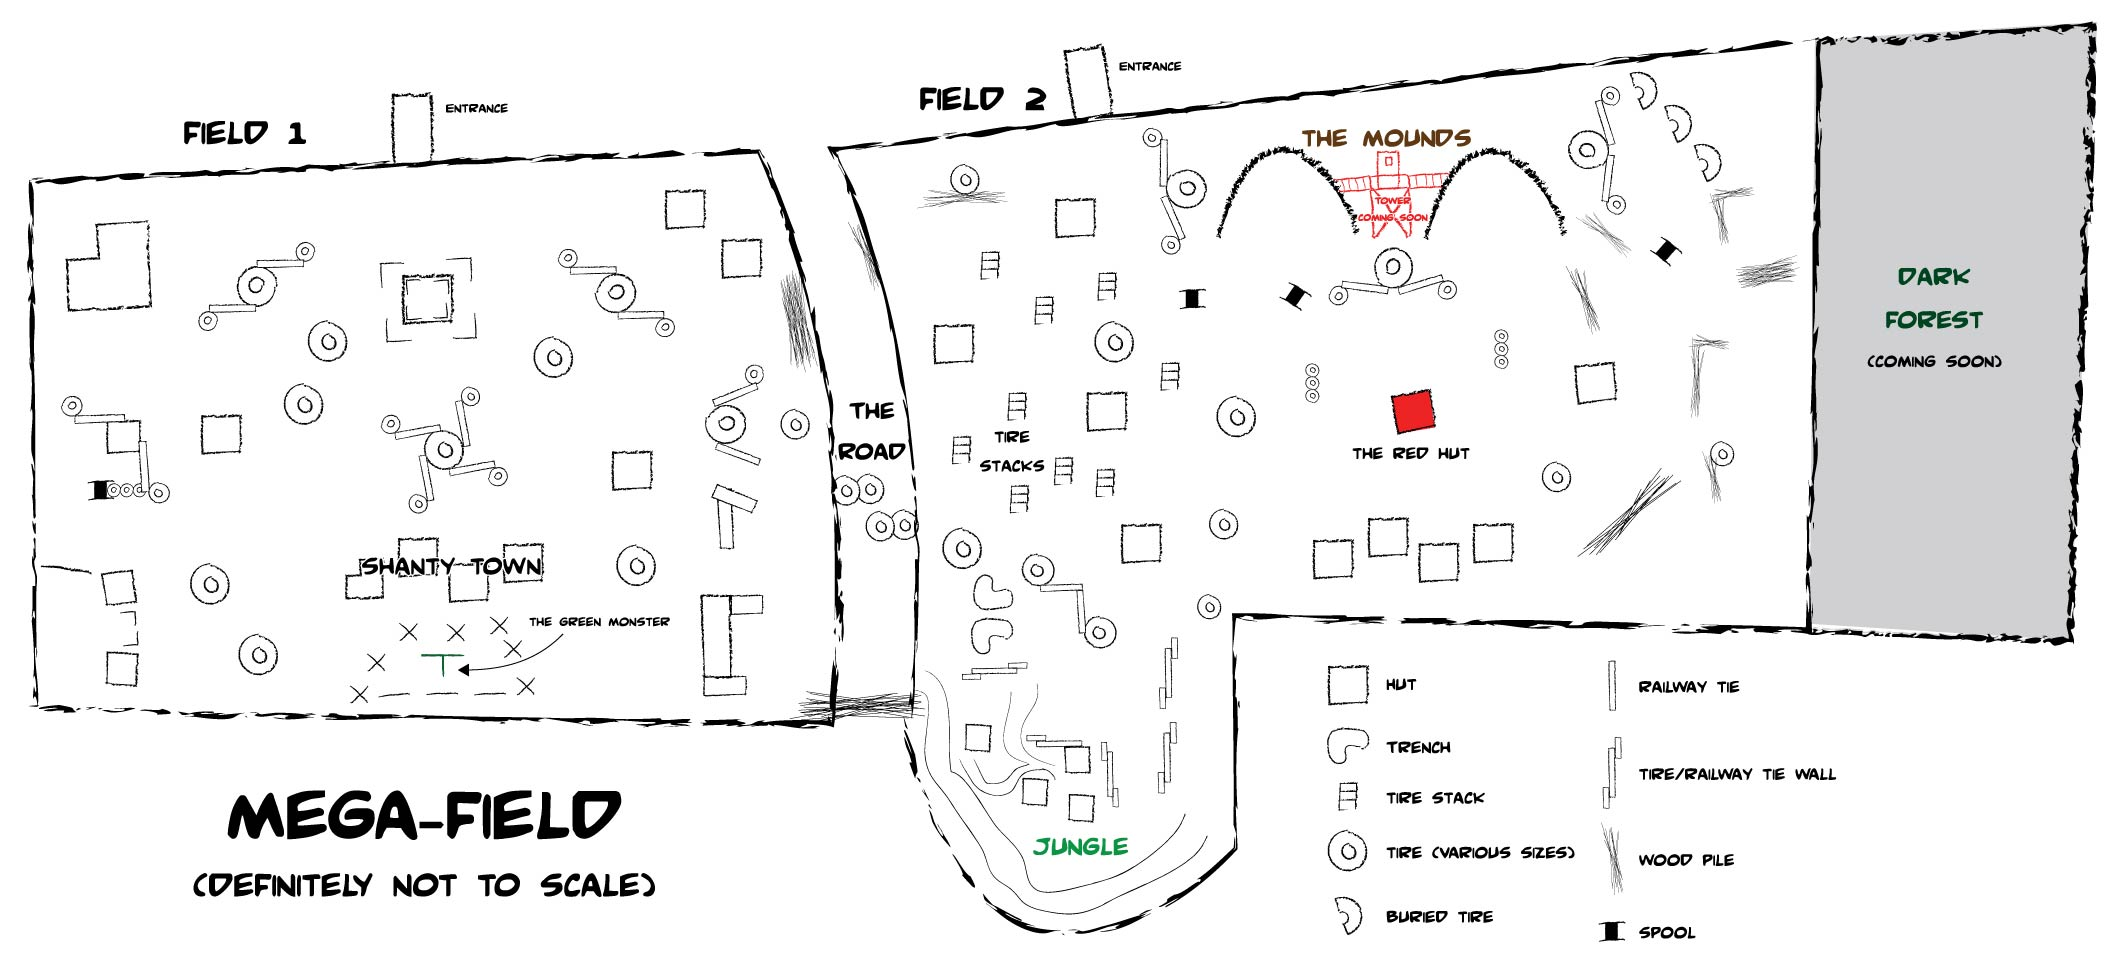 Millionaire Paintball in Abbotsford Field Map